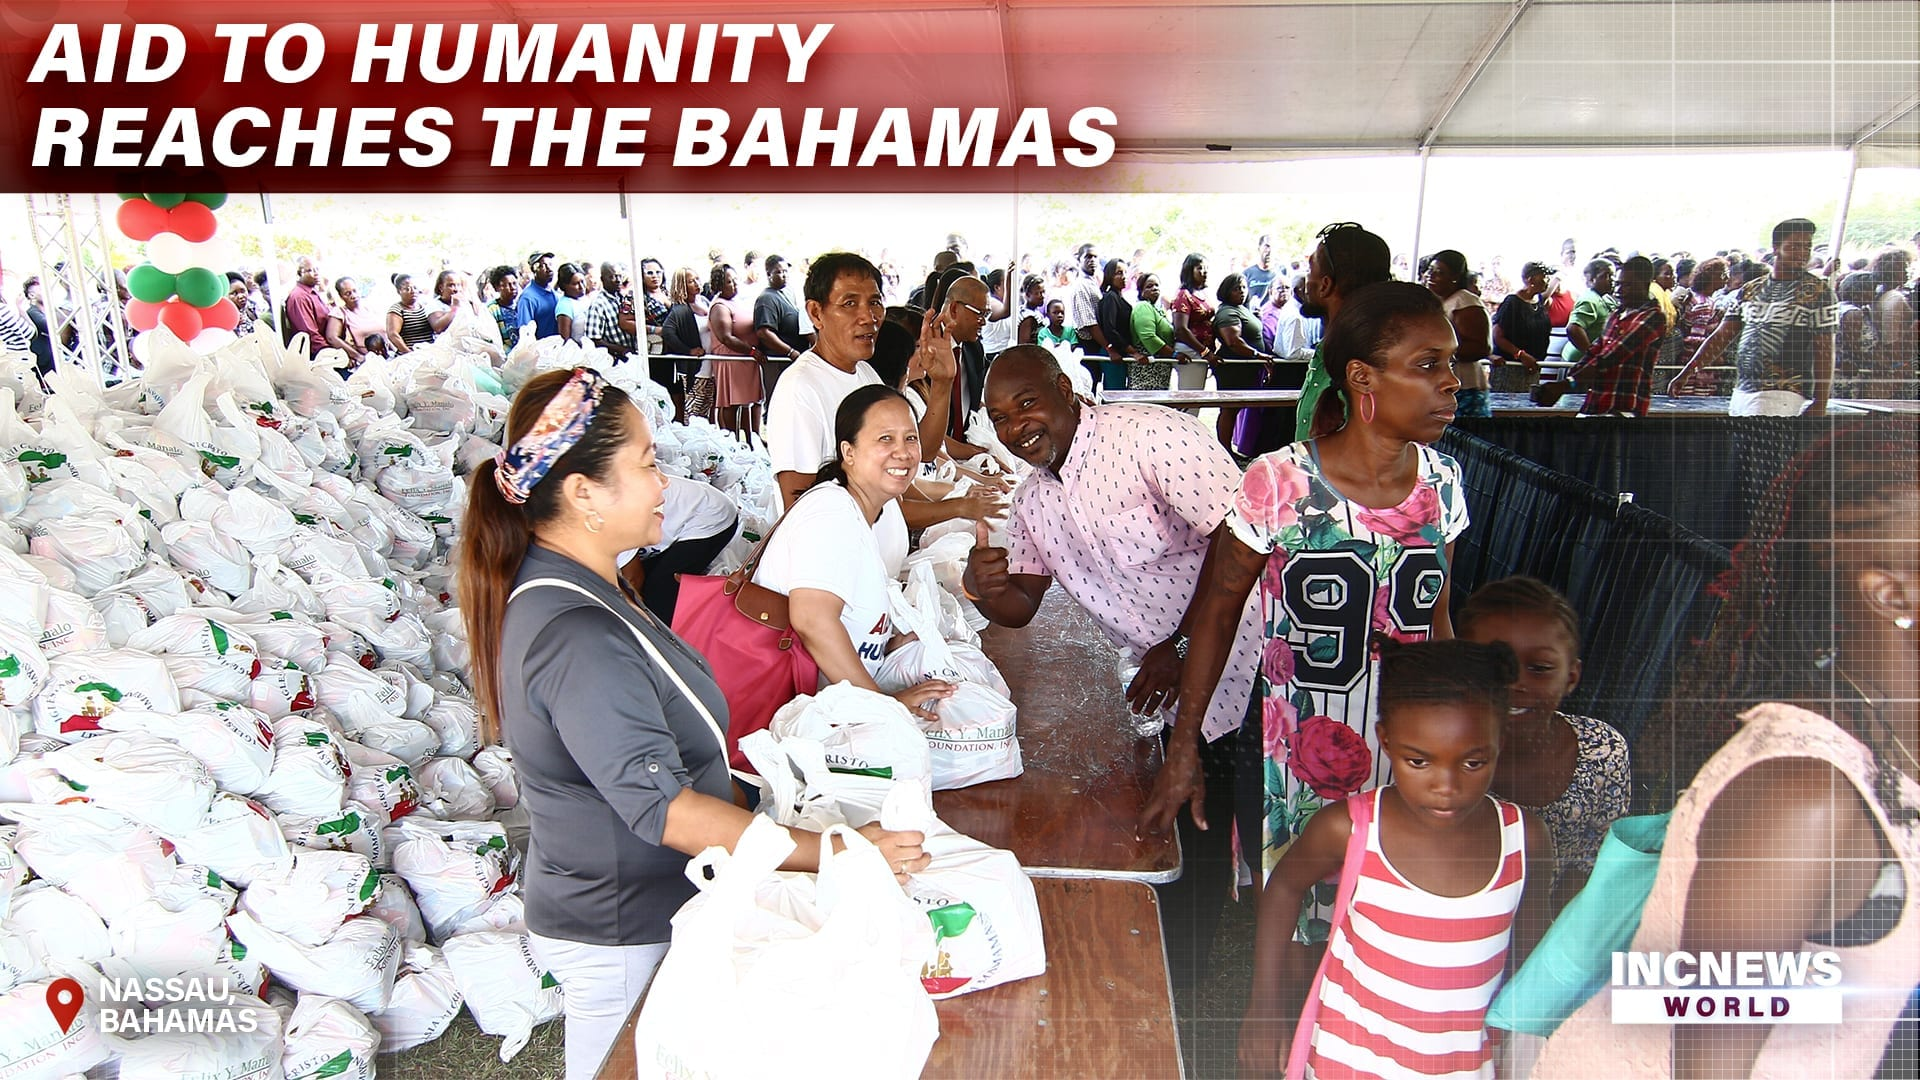 AID TO HUMANITY REACHES THE BAHAMAS